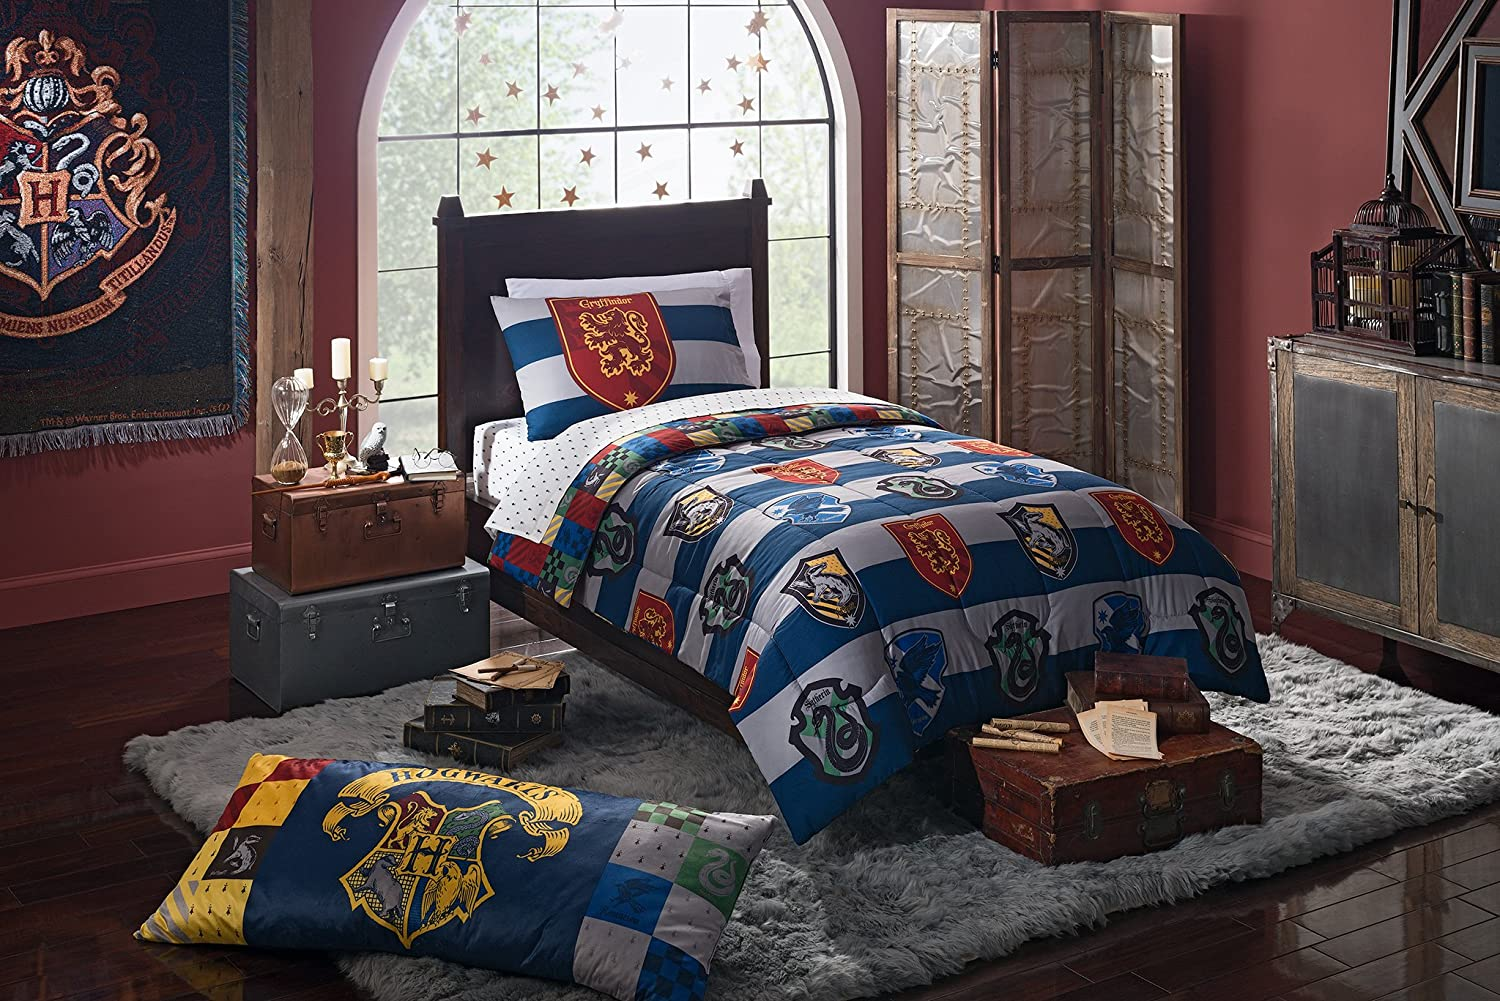 4 Piece Kids Blue White Multi Harry Potter Rugby Pride Comforter with Sheets Twin Set, Magical Hogwarts House Theme, Bold Stripes Pattern Background, Extra Soft & Comfy Reversible Bedding, Polyester NE